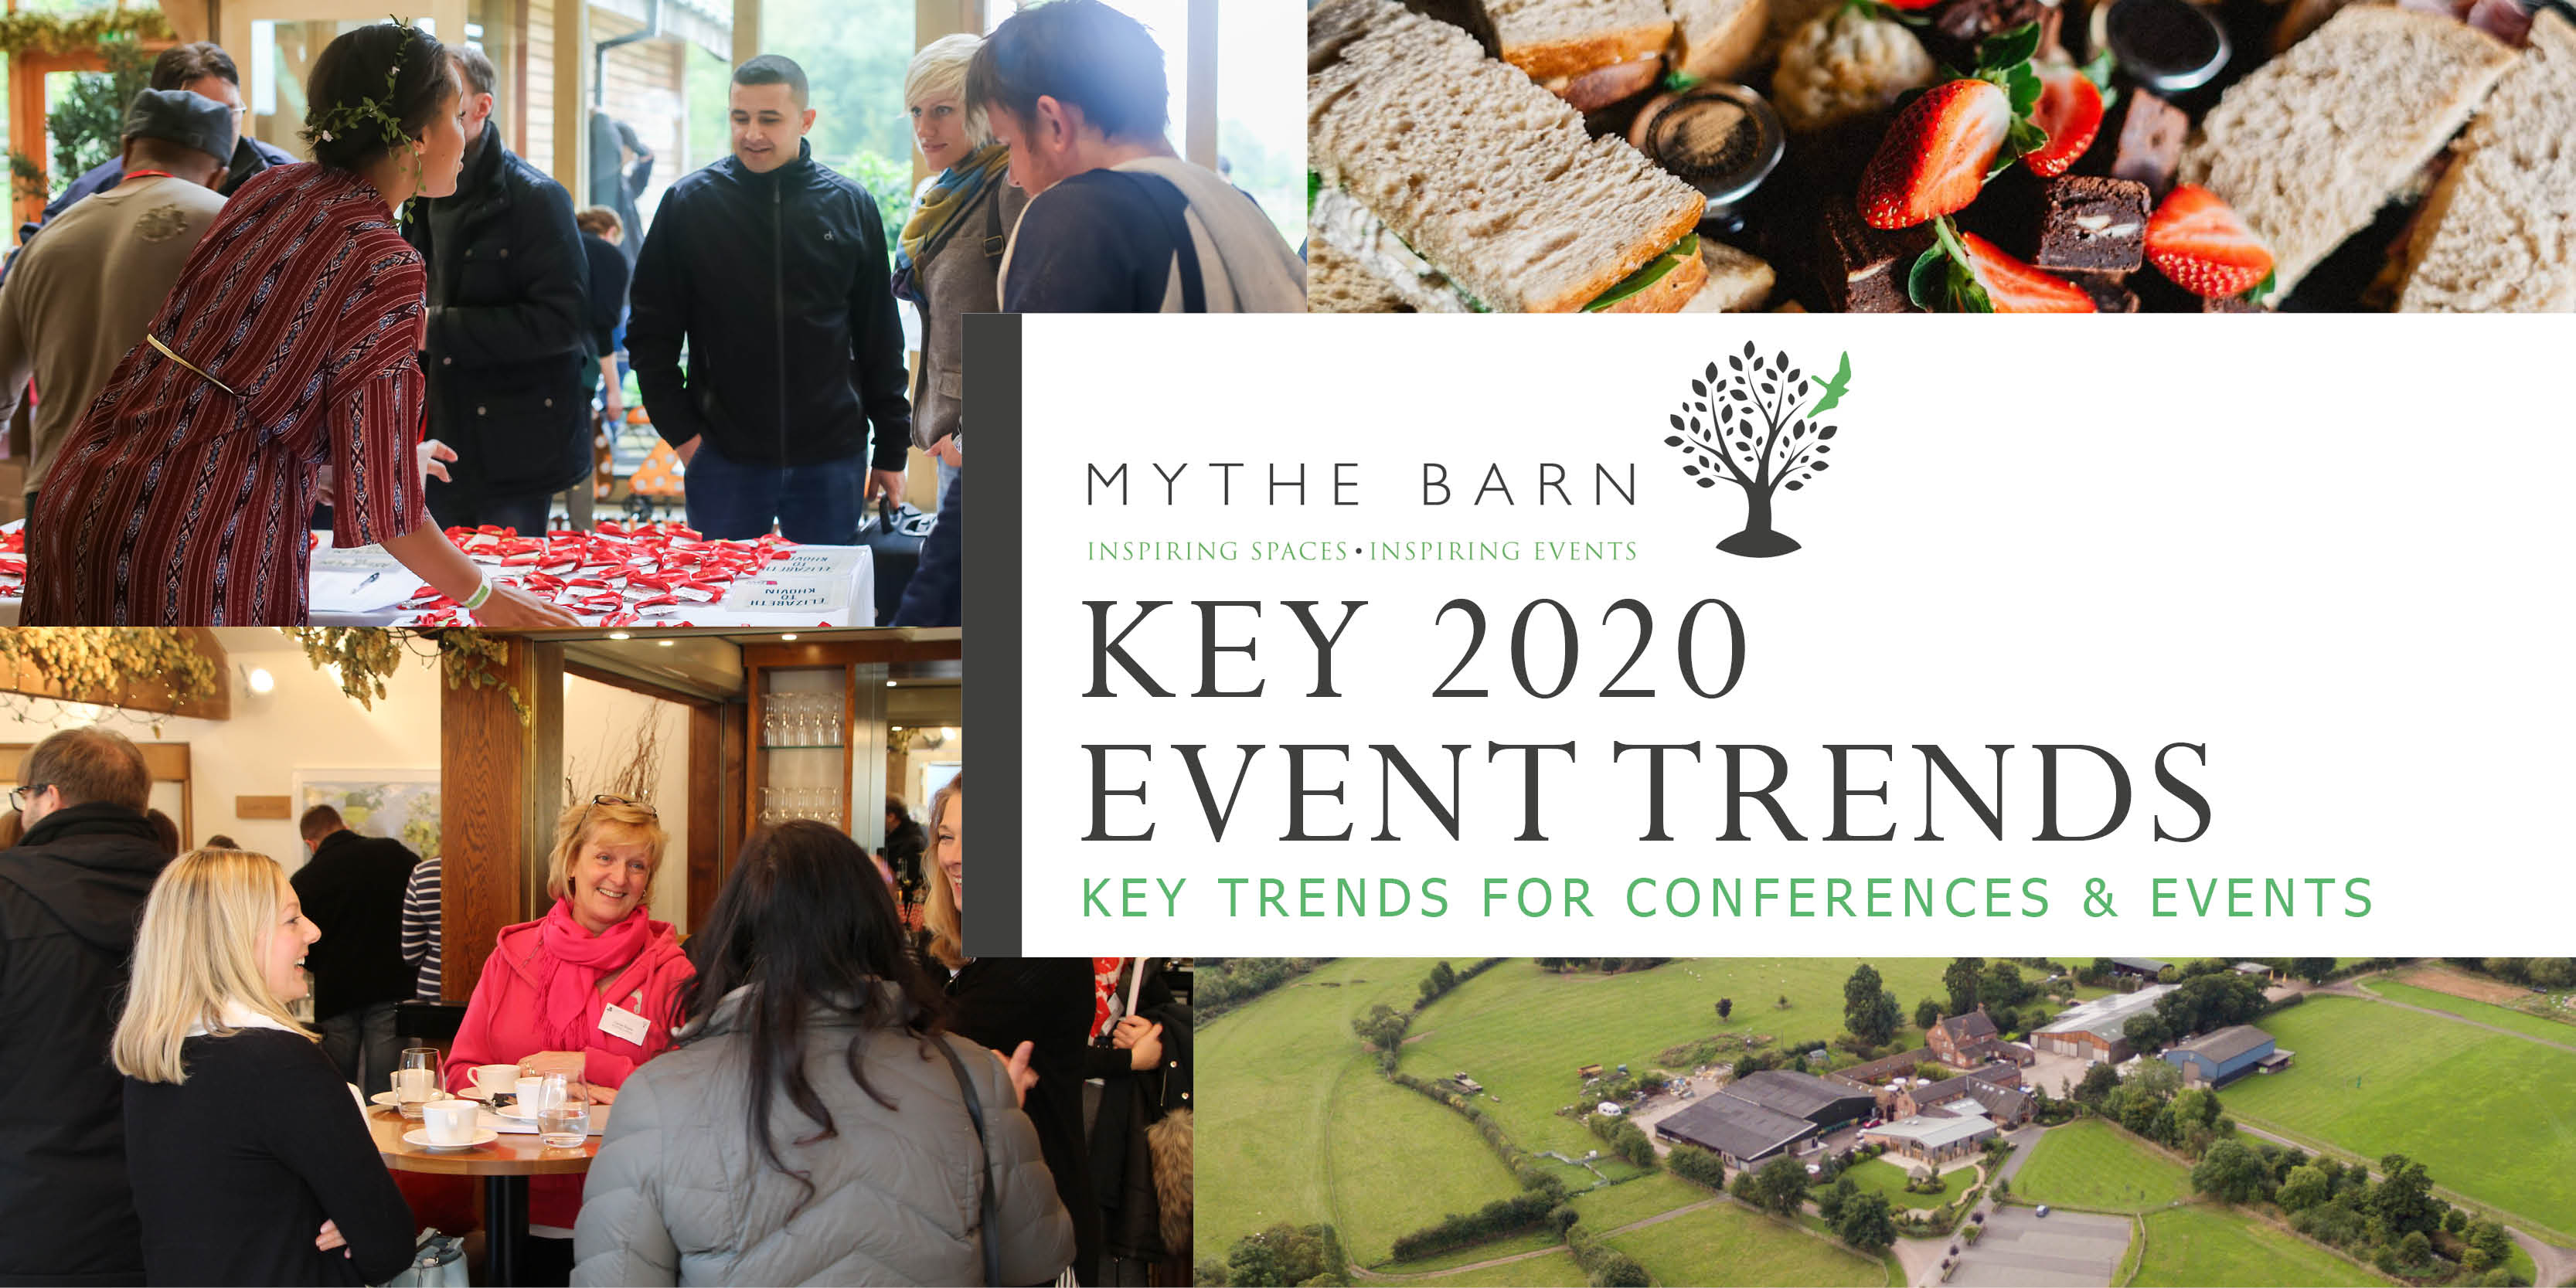 Key 2020 event trends